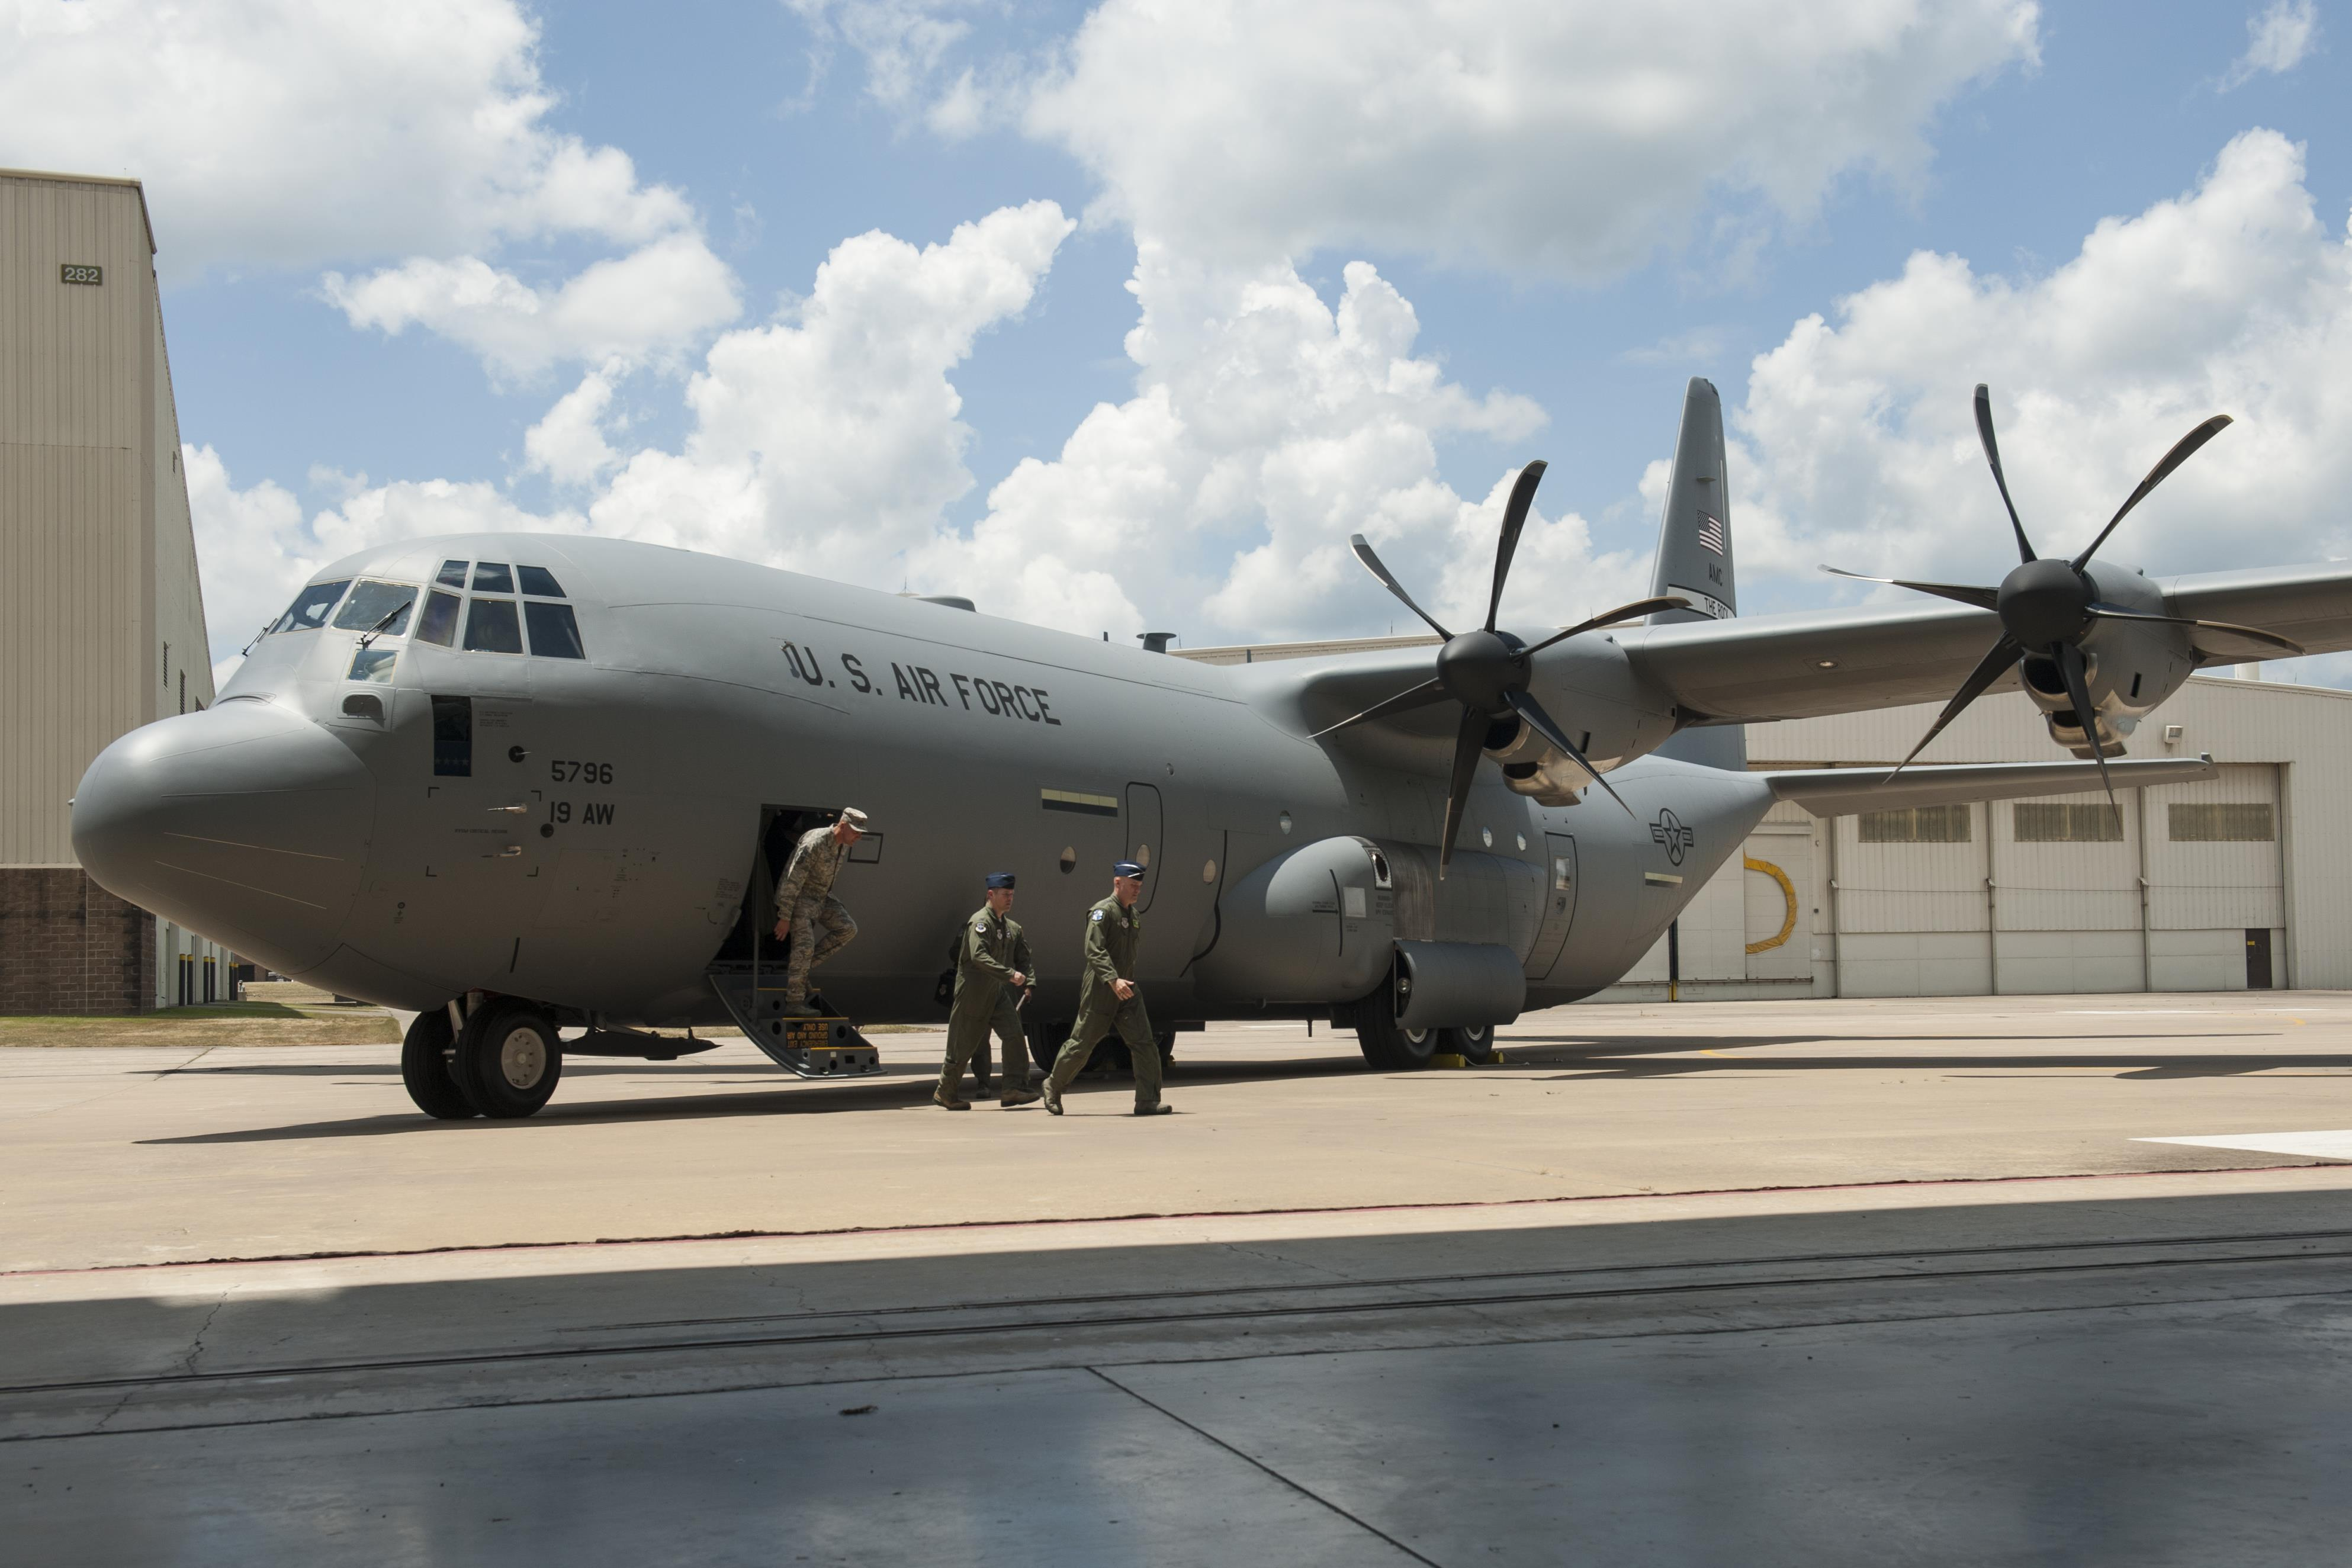 little rock air force base guys Established:1955 base type:air force about the 19th airlift wing at little rock air force base, arkansas, is part of air mobility command and provides the department of defense the largest c-130 fleet in the world.